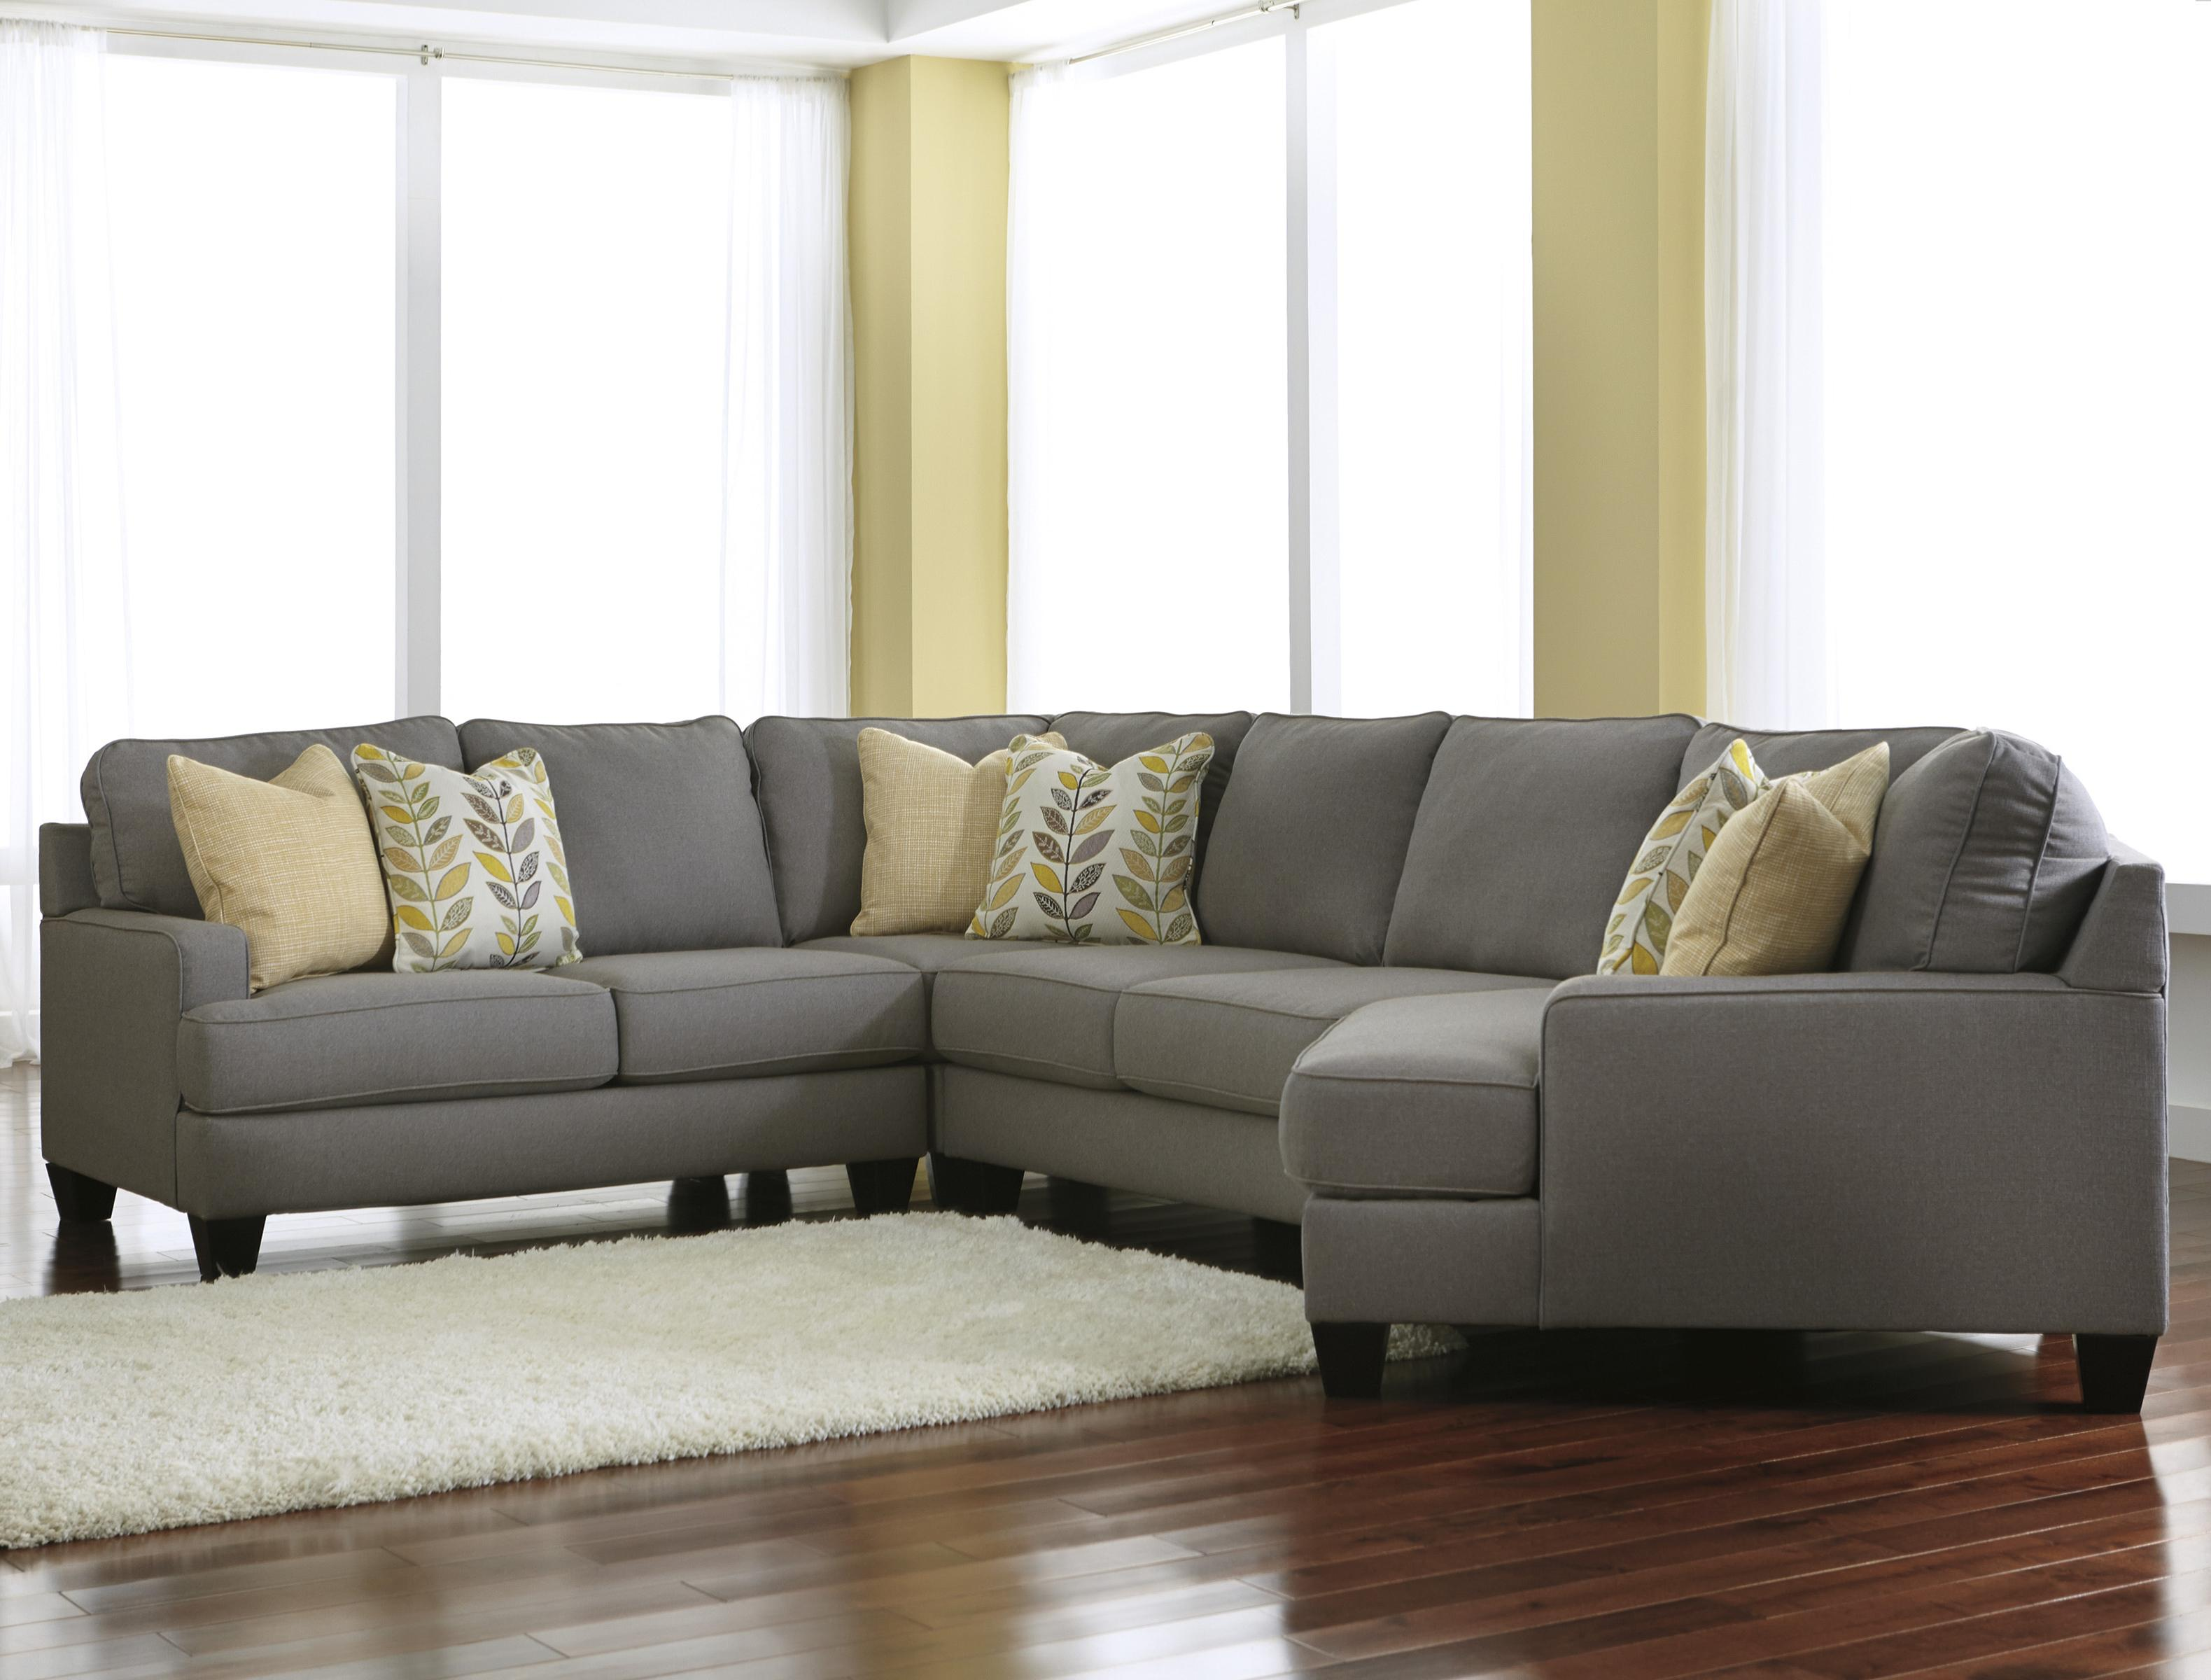 Signature design by ashley chamberly alloy modern 4 for 4 piece recliner sectional sofa